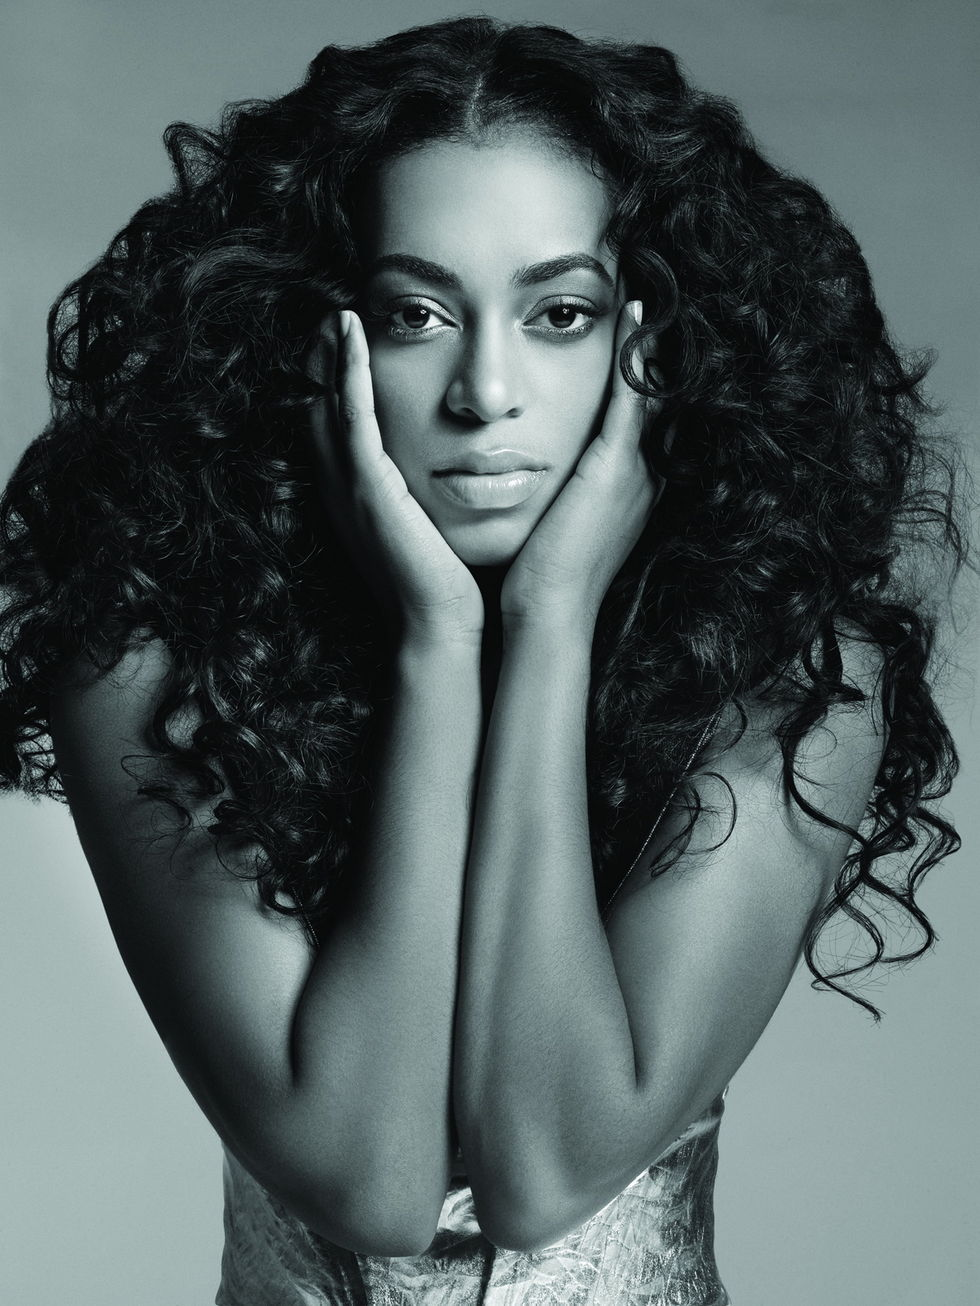 solange-knowles-sol-angel-and-the-hadley-street-dreams-album-promos-01